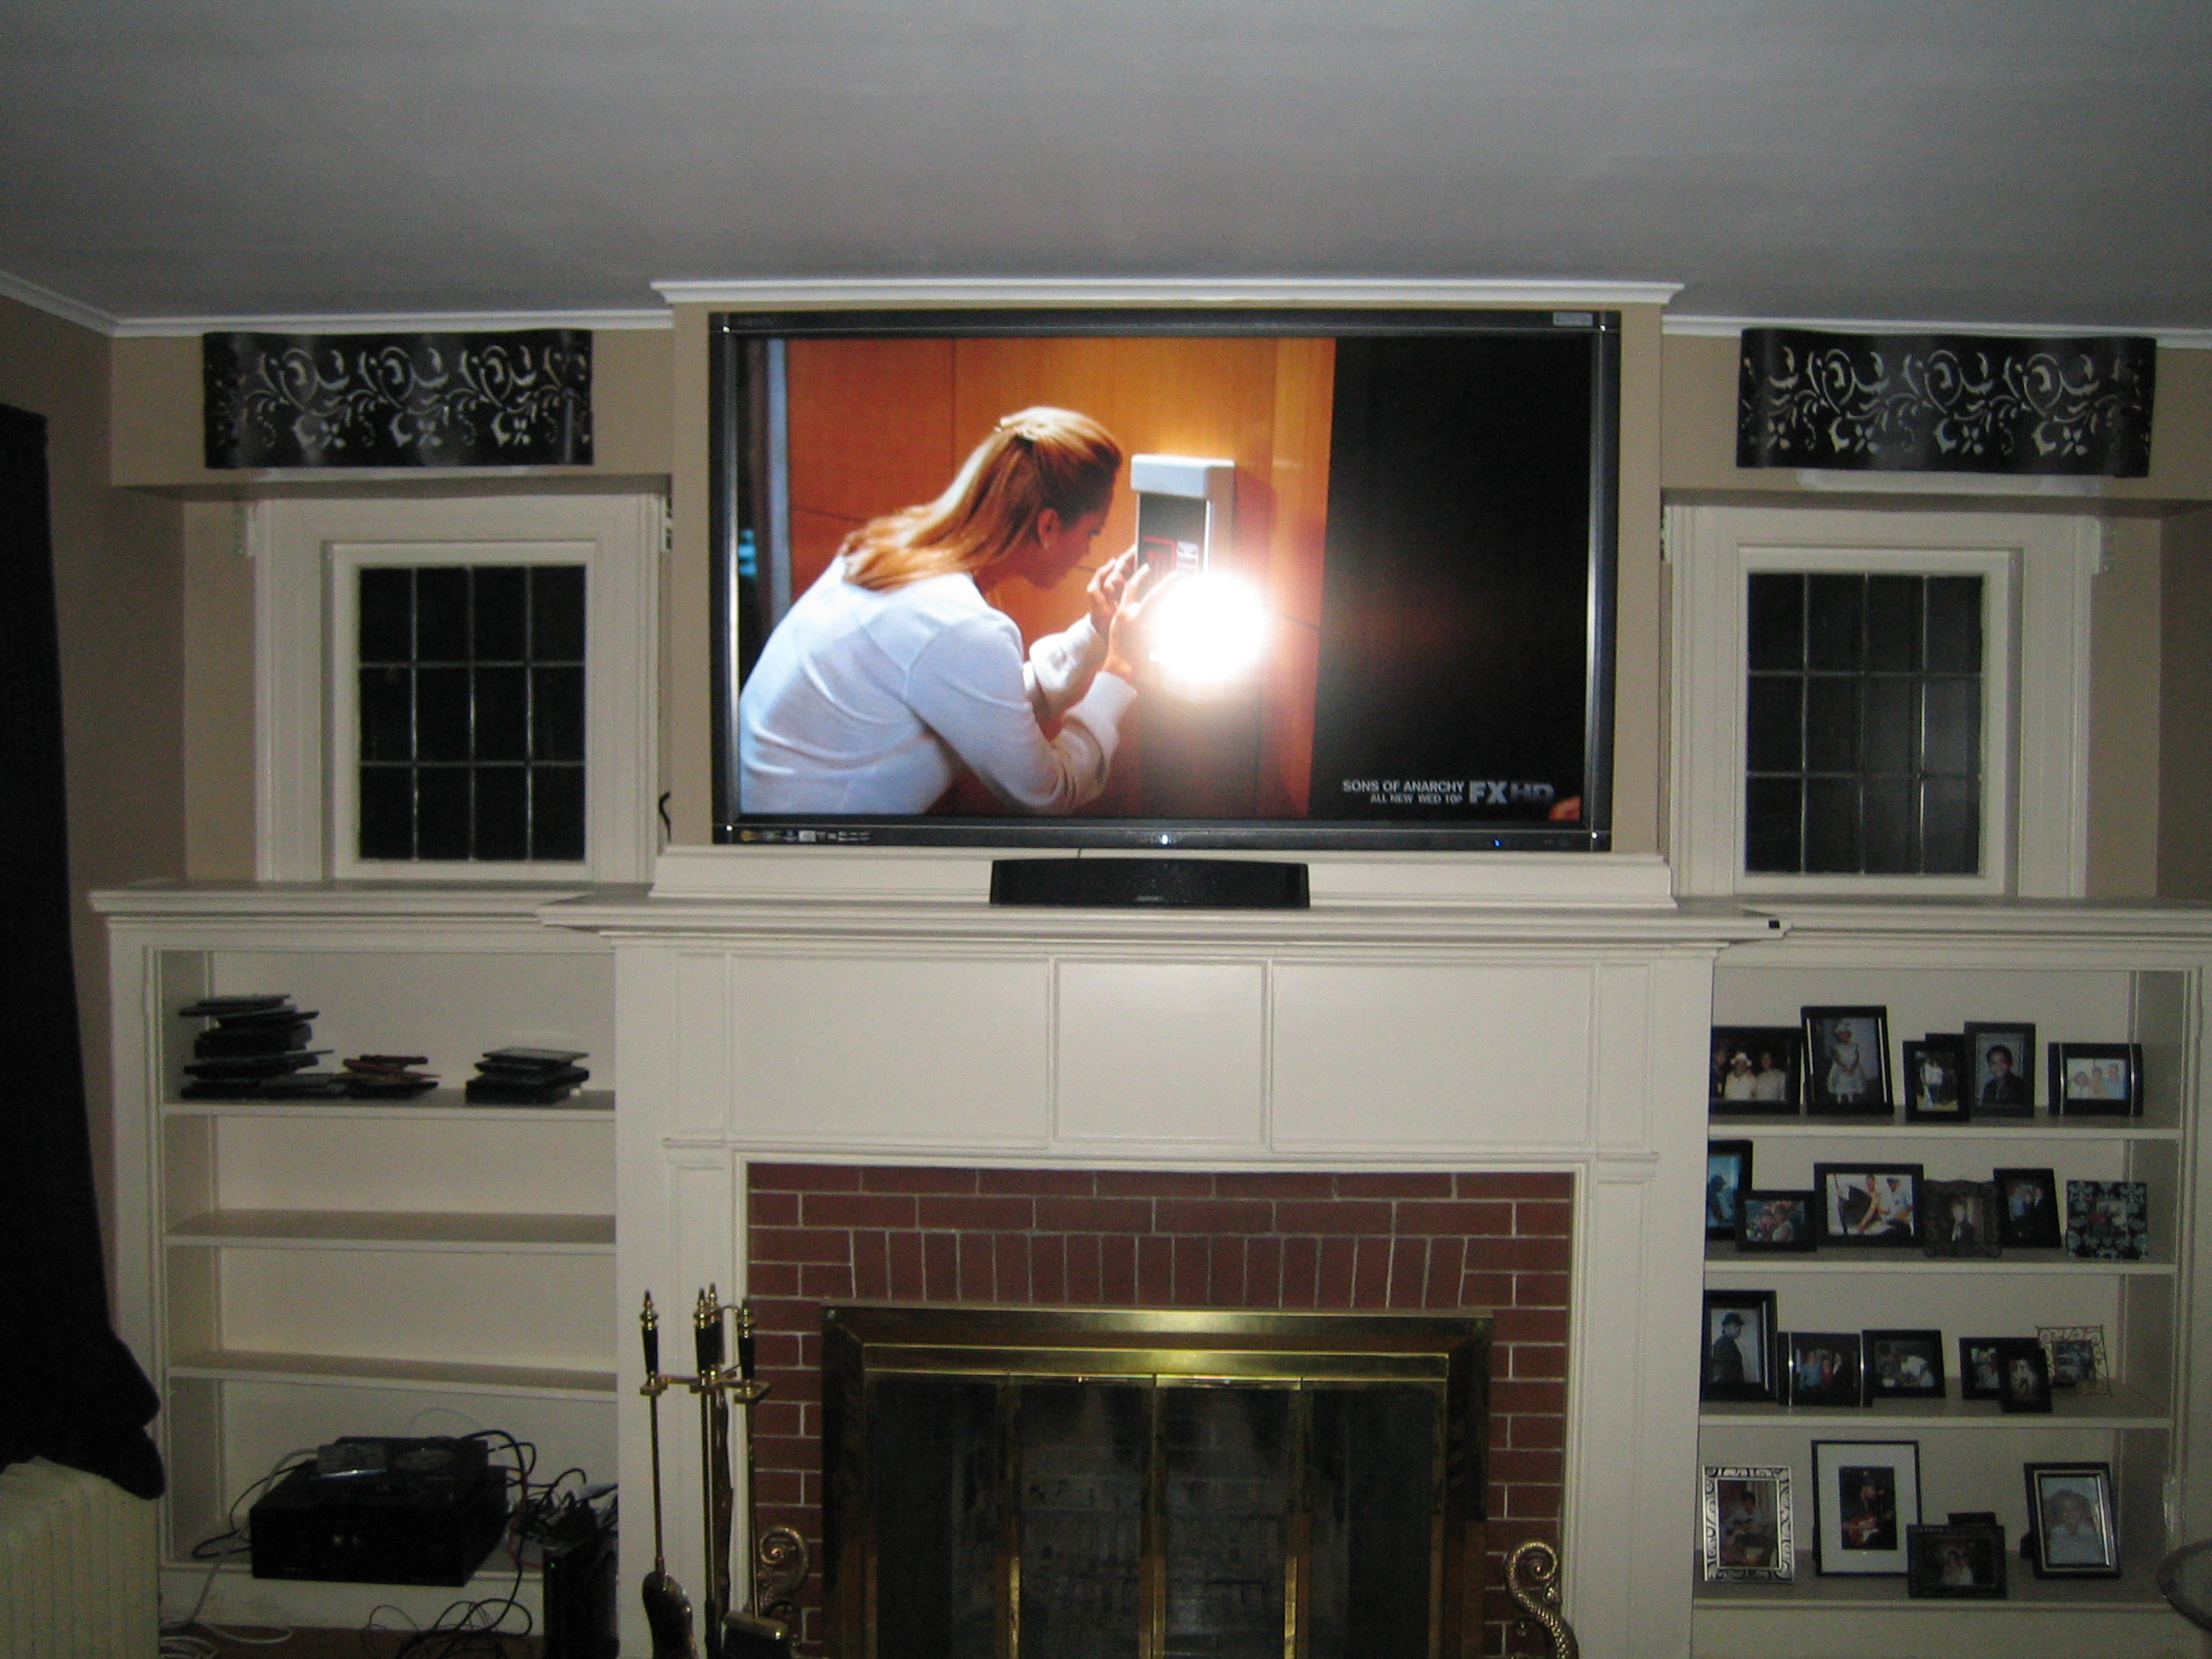 Img on mount tv over fireplace